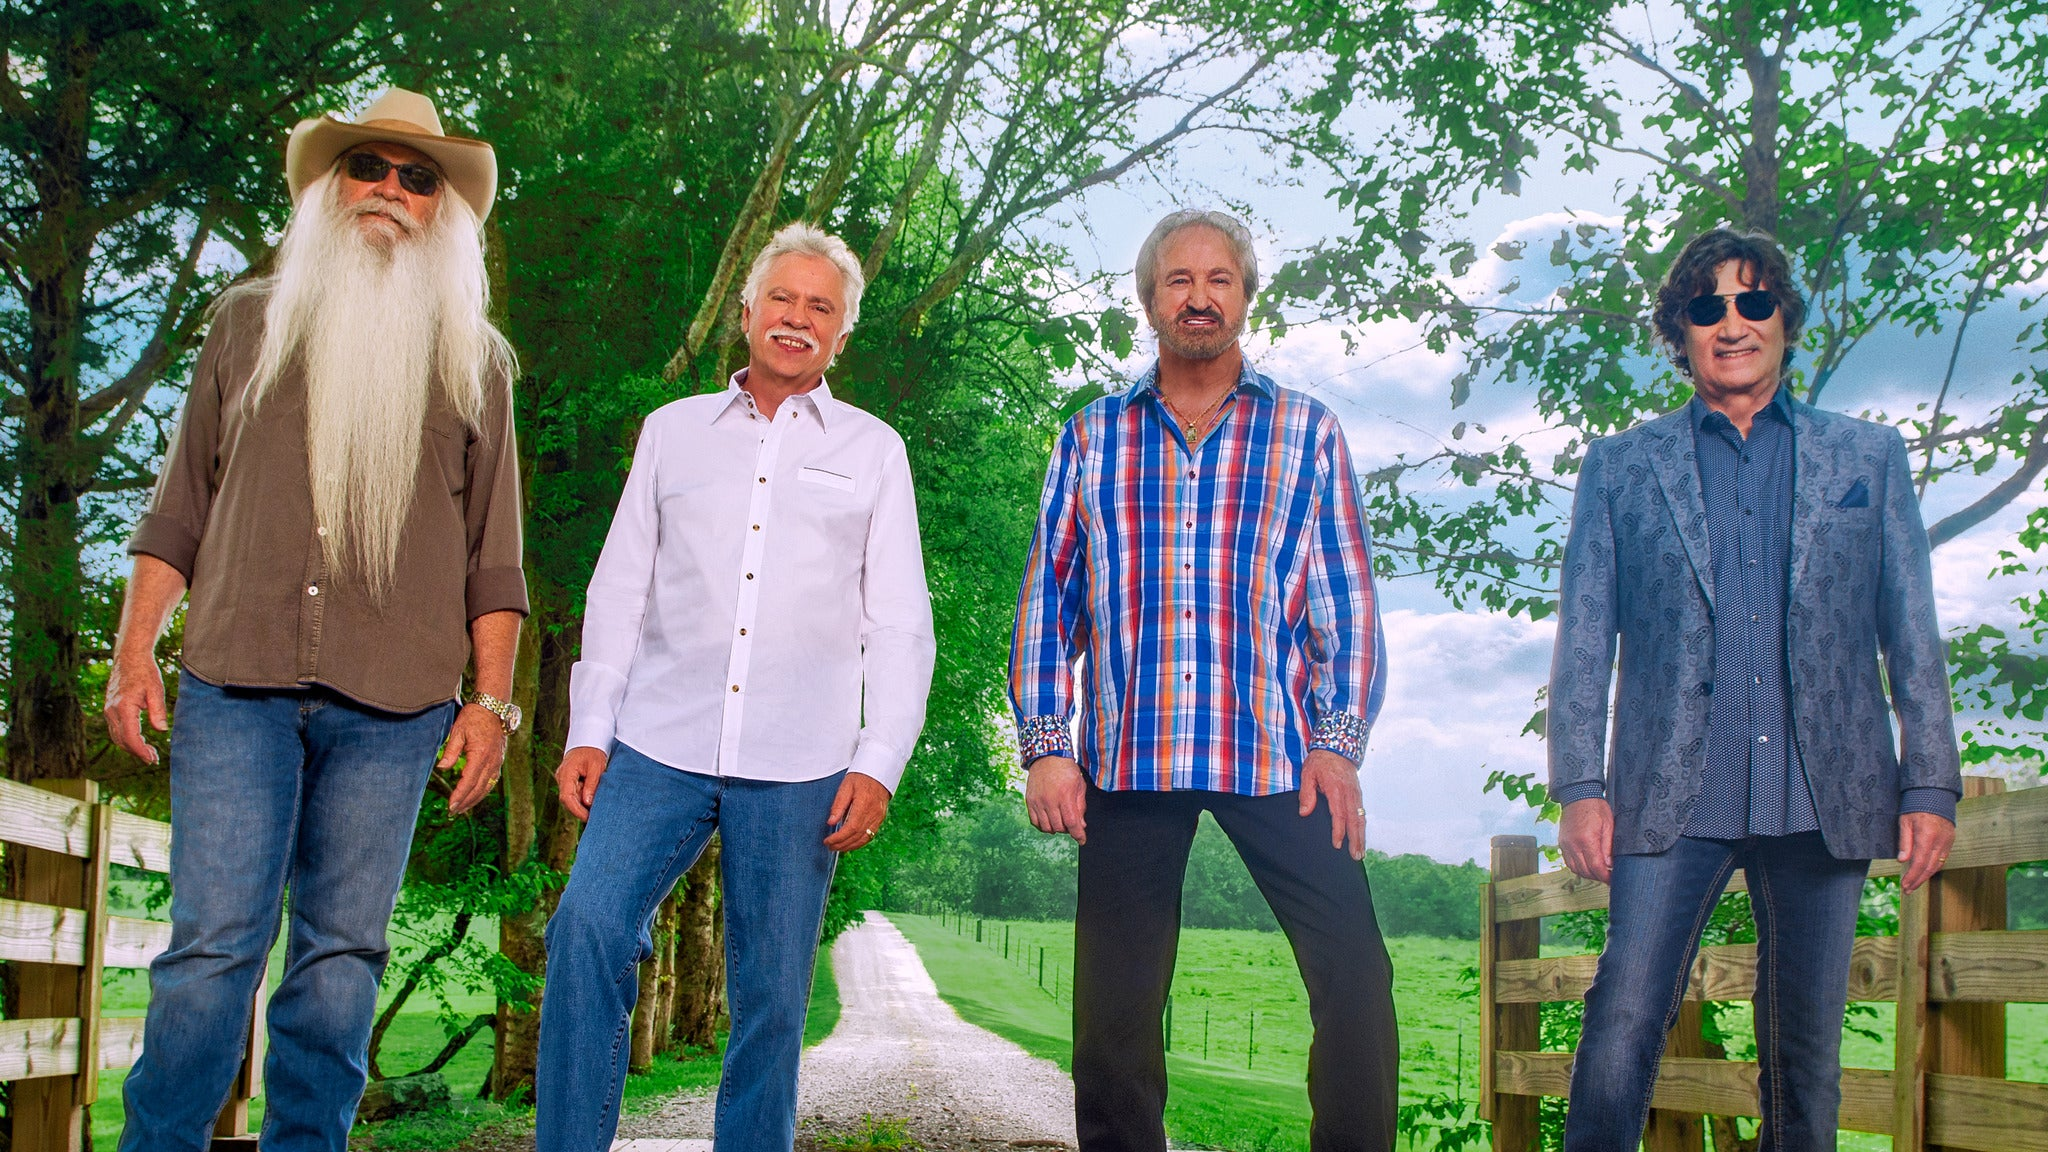 Oak Ridge Boys at Florida Strawberry Festival